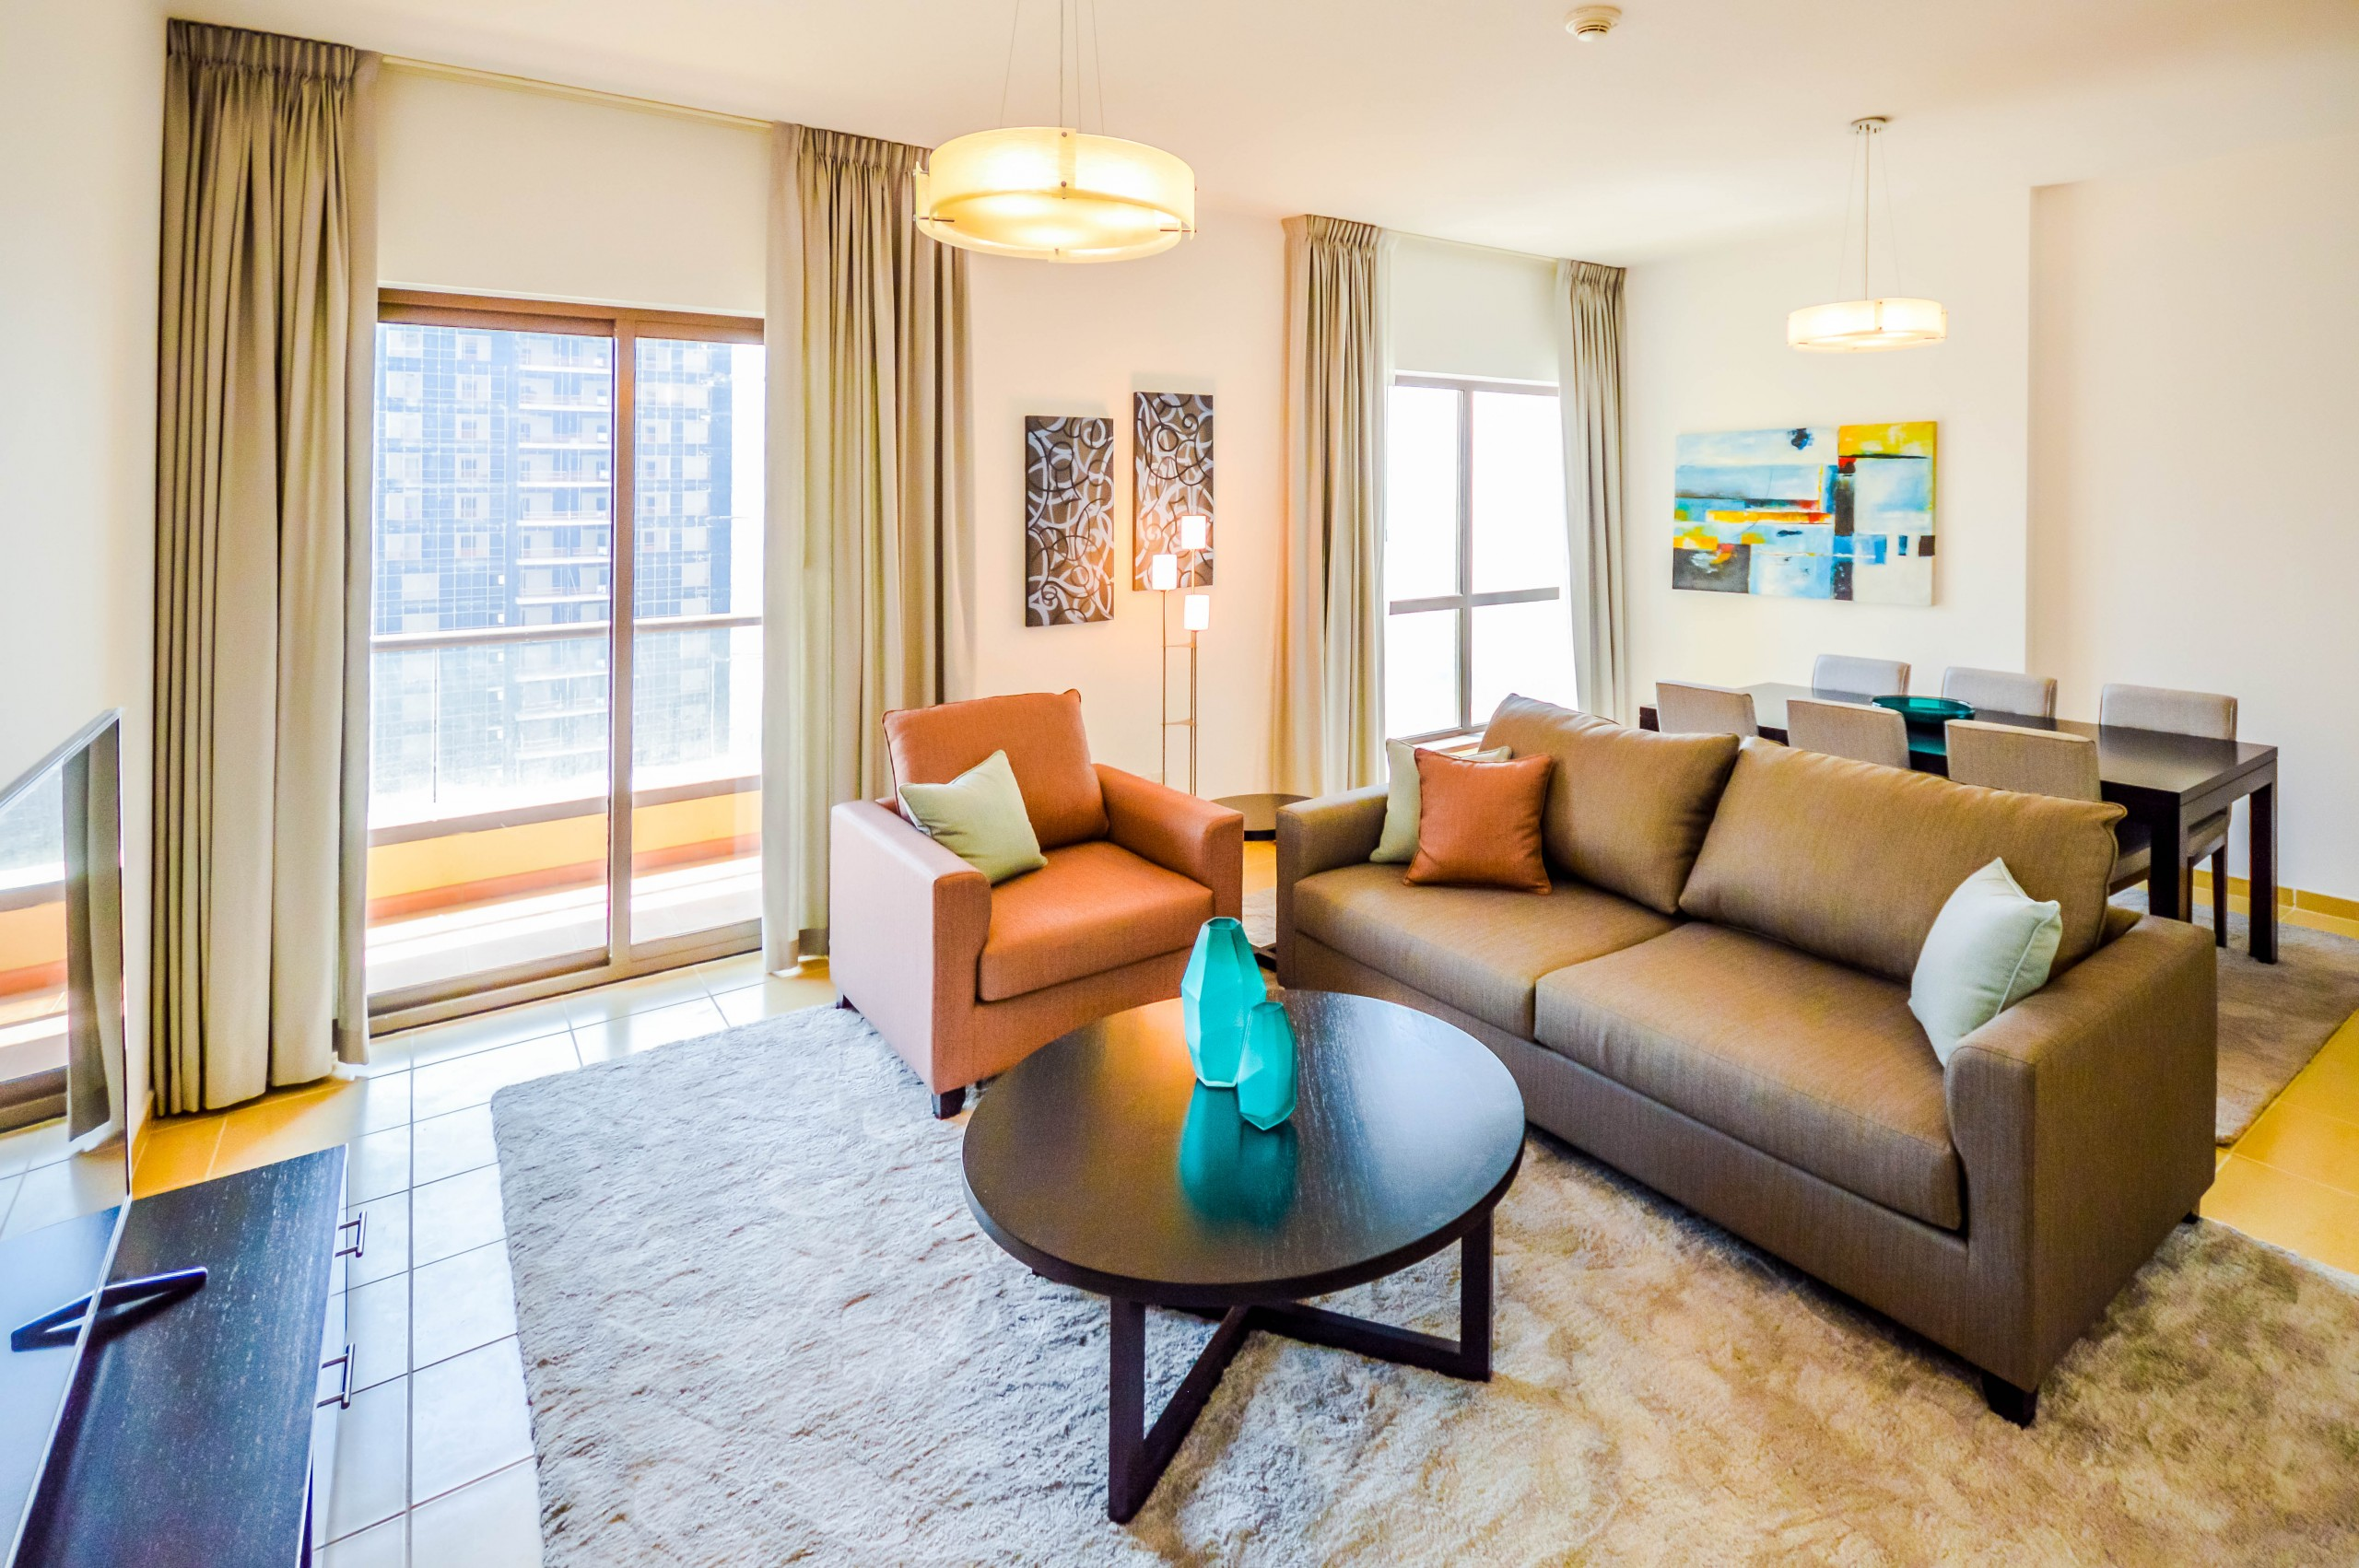 apartments in dubai mesmerizing 2br apartment with amazing views